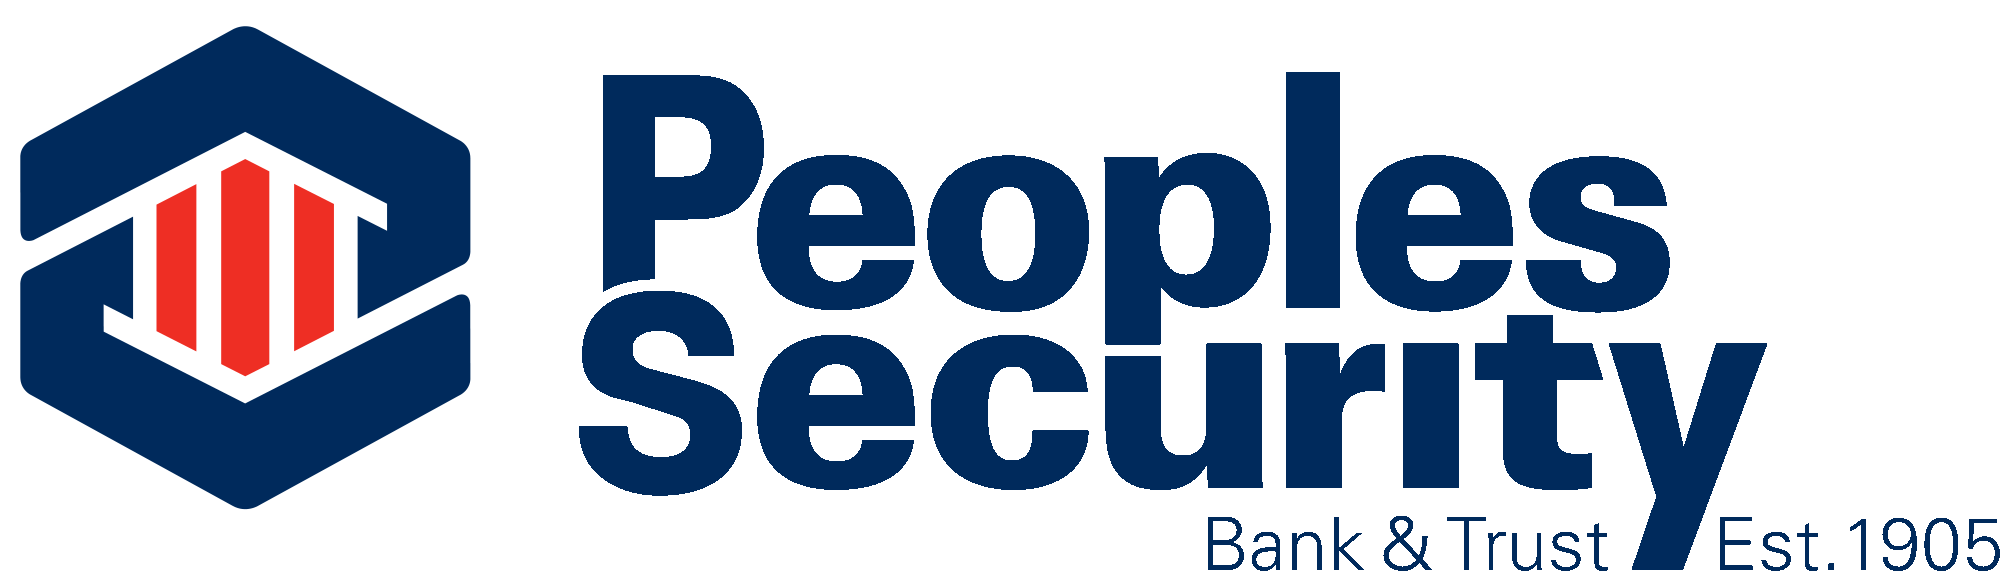 Peoples Security Bank and Trust Company logo